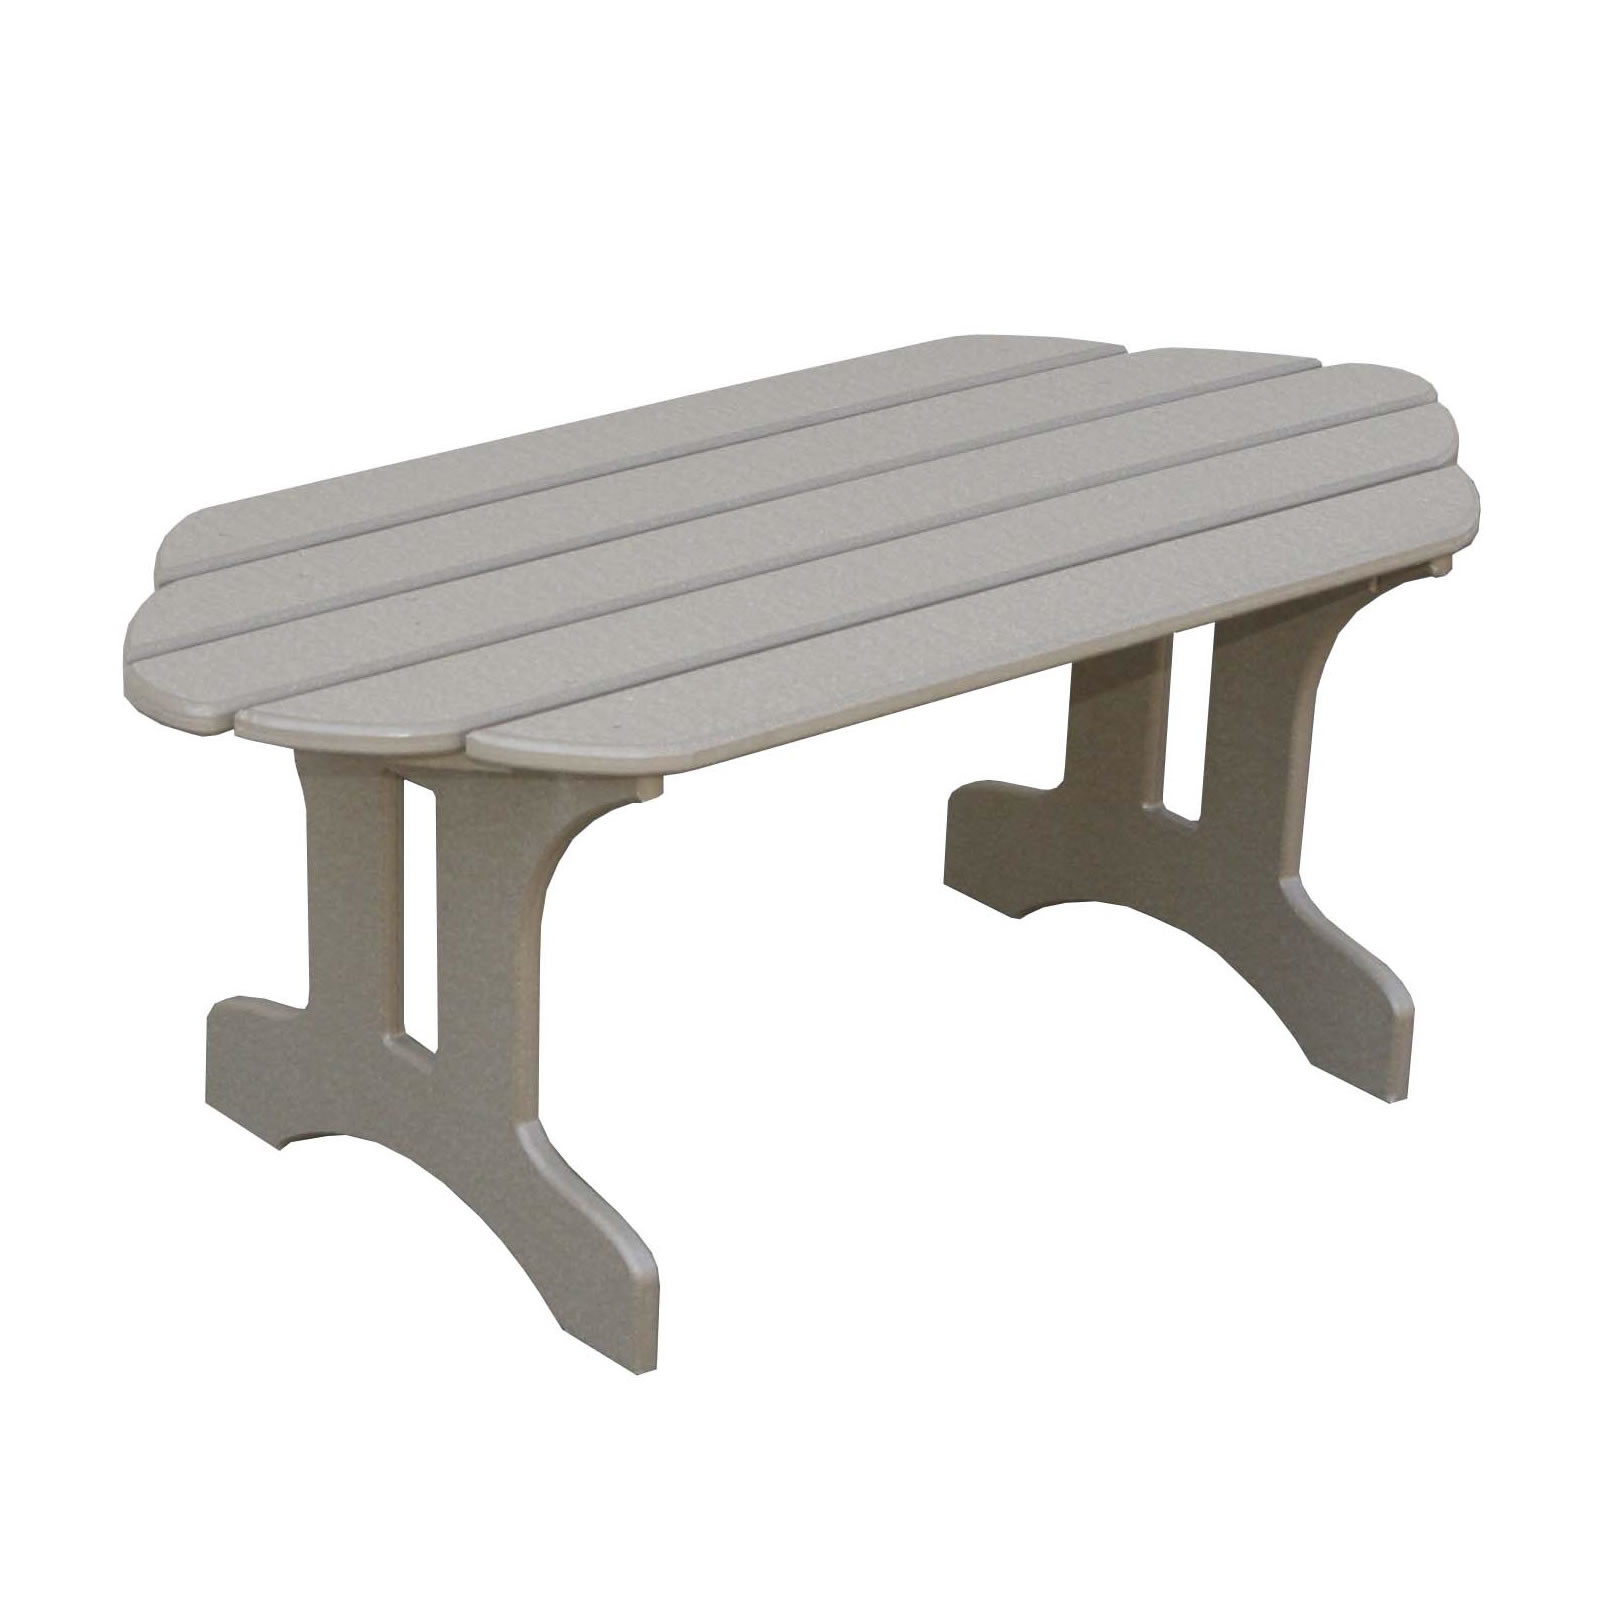 Eagle One Adirondack Coffee Table